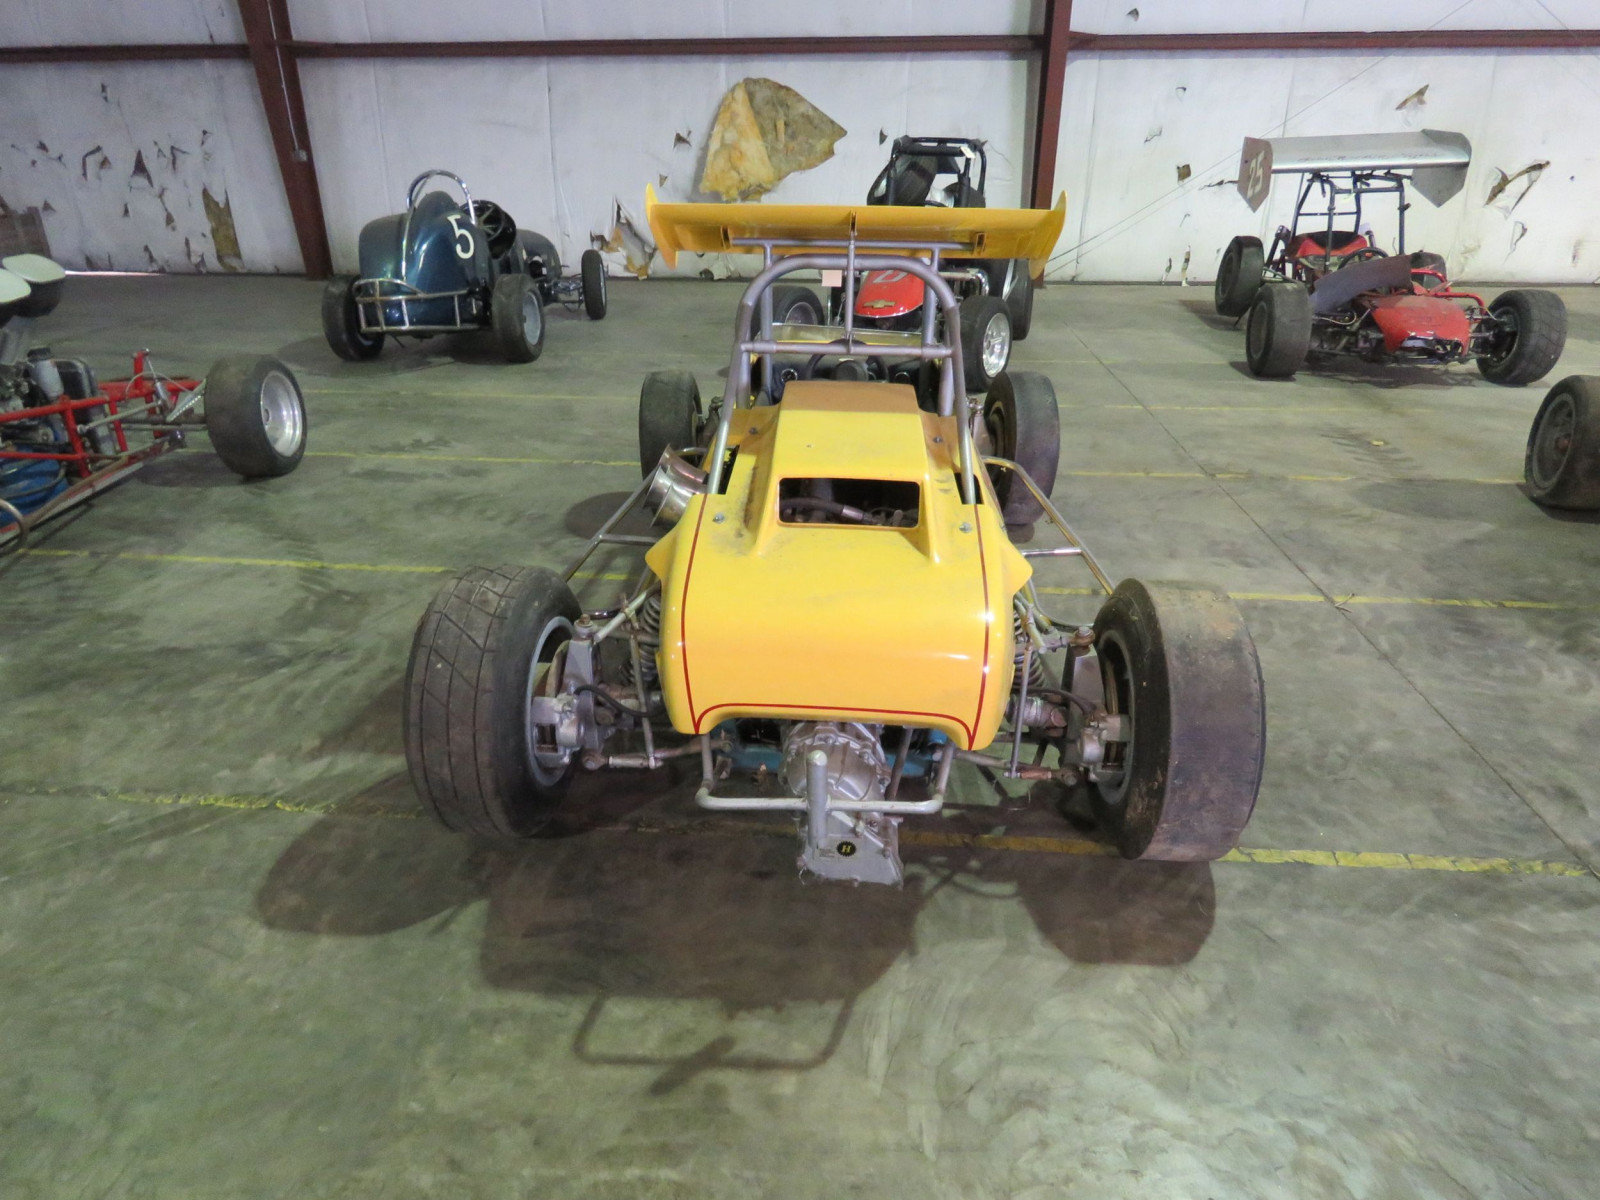 RARE Ken Brenn rear Engine 110 Beattie Midget Race Car - Image 6